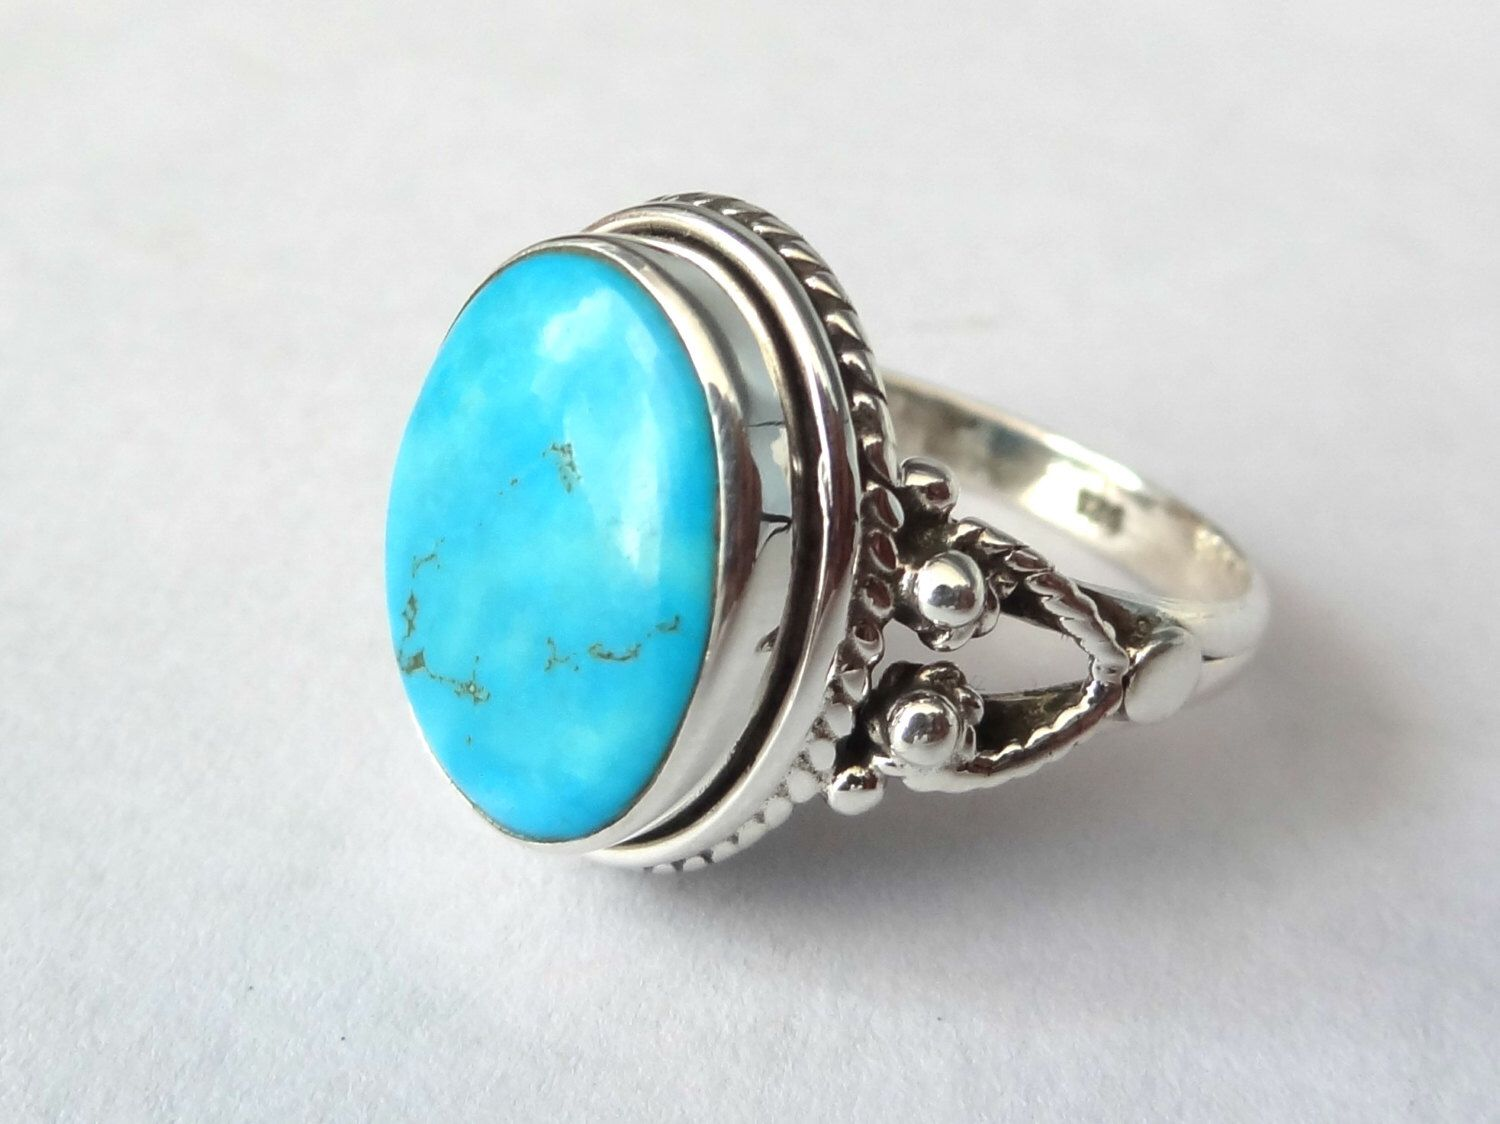 Turquoise ring, silver ring, 92.5 solid sterling silver ring, Natural Turquoise Silver Ring, 92.5% sterling silver (custom size, your size) by SterlingSilverVenue on Etsy https://www.etsy.com/listing/398509691/turquoise-ring-silver-ring-925-solid